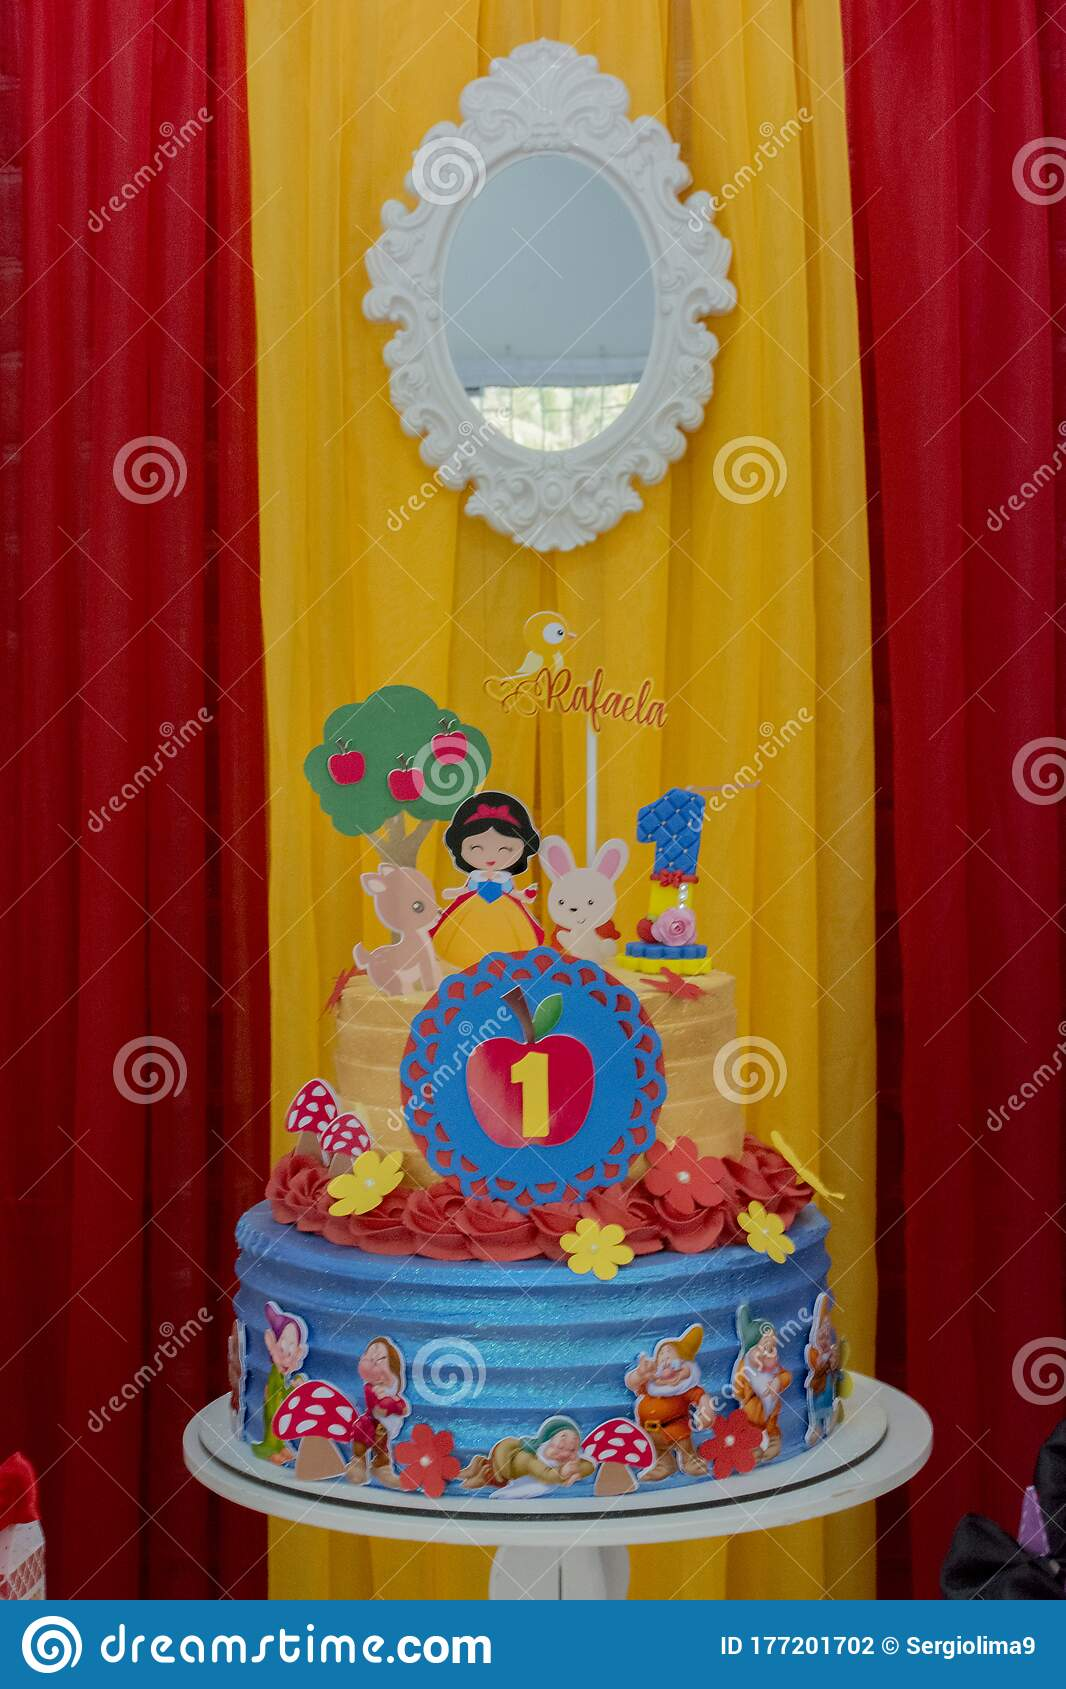 Colorful Birthday Party Decoration Theme Of Snow White And The Seven Dwarfs Editorial Photography Image Of Friendship Children 177201702